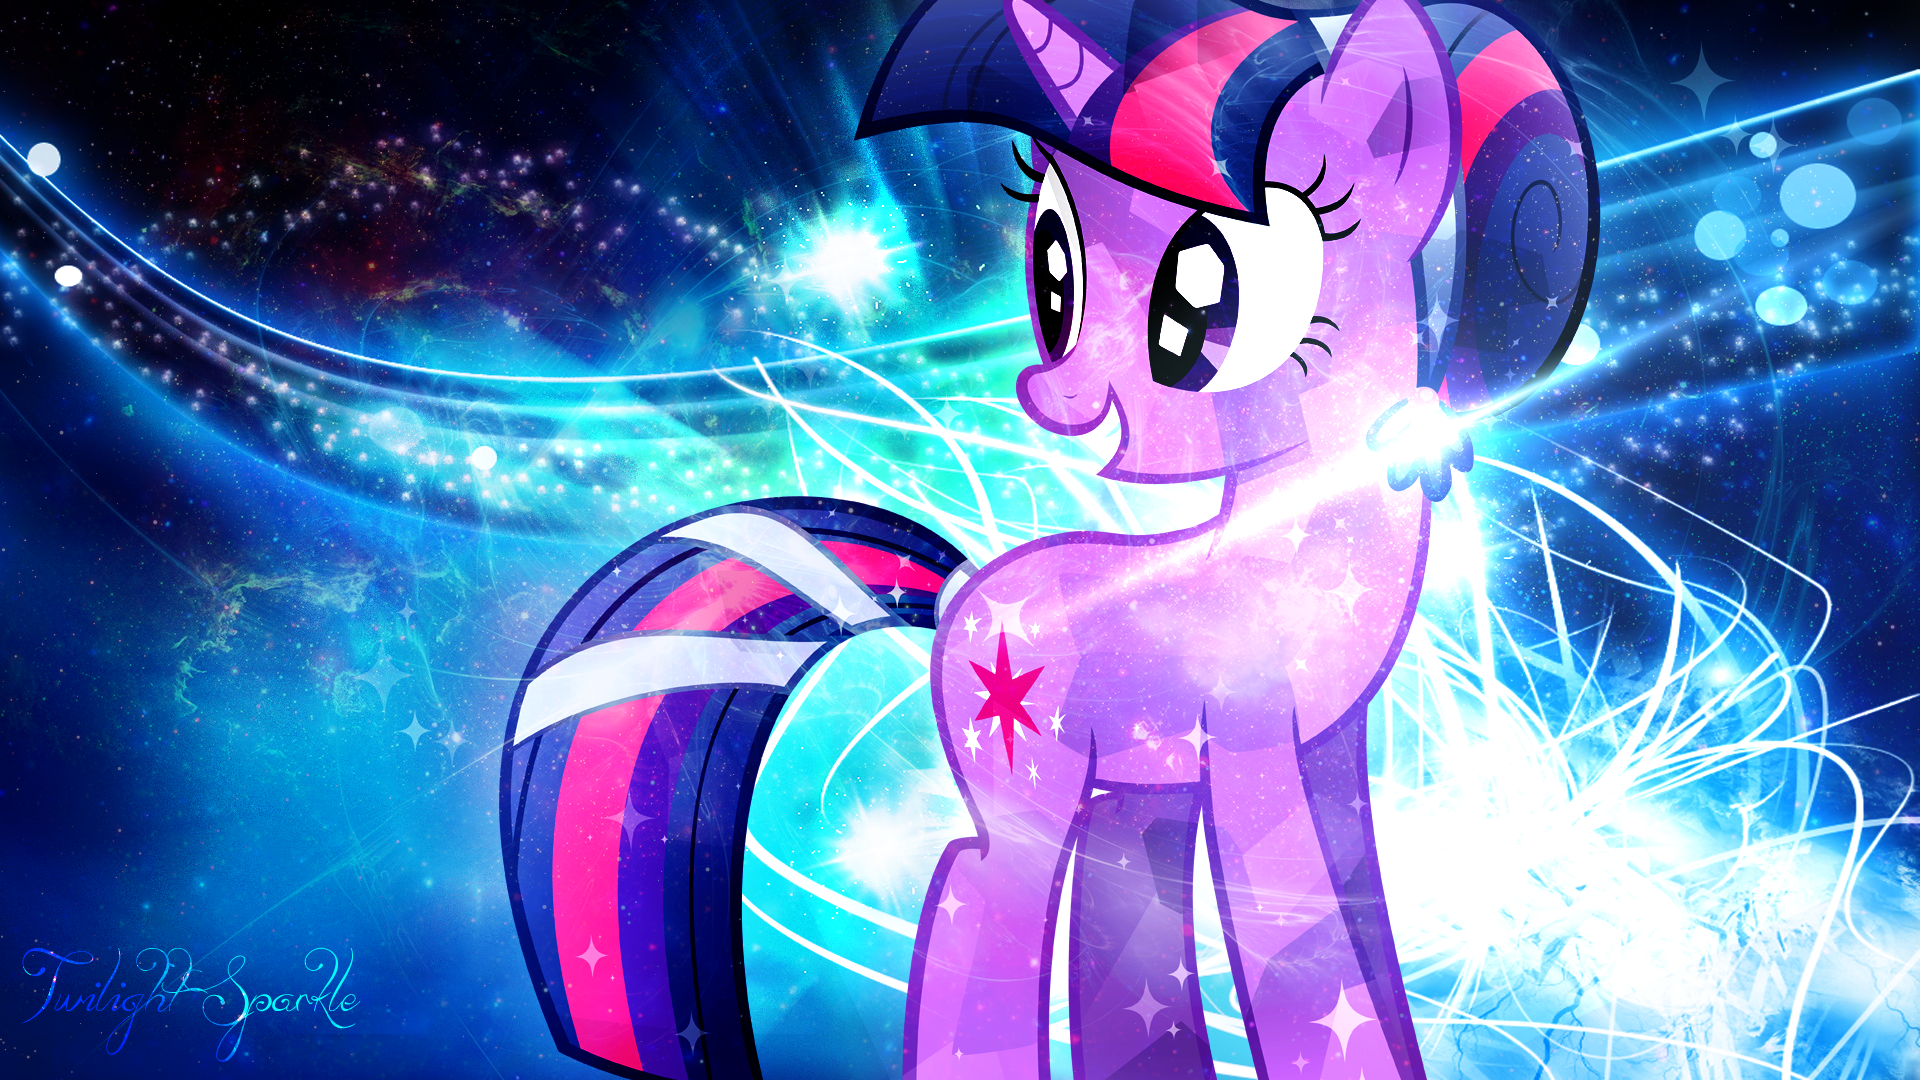 alicorn neon twi | Ponies | Pinterest | Twilight sparkle and Pony